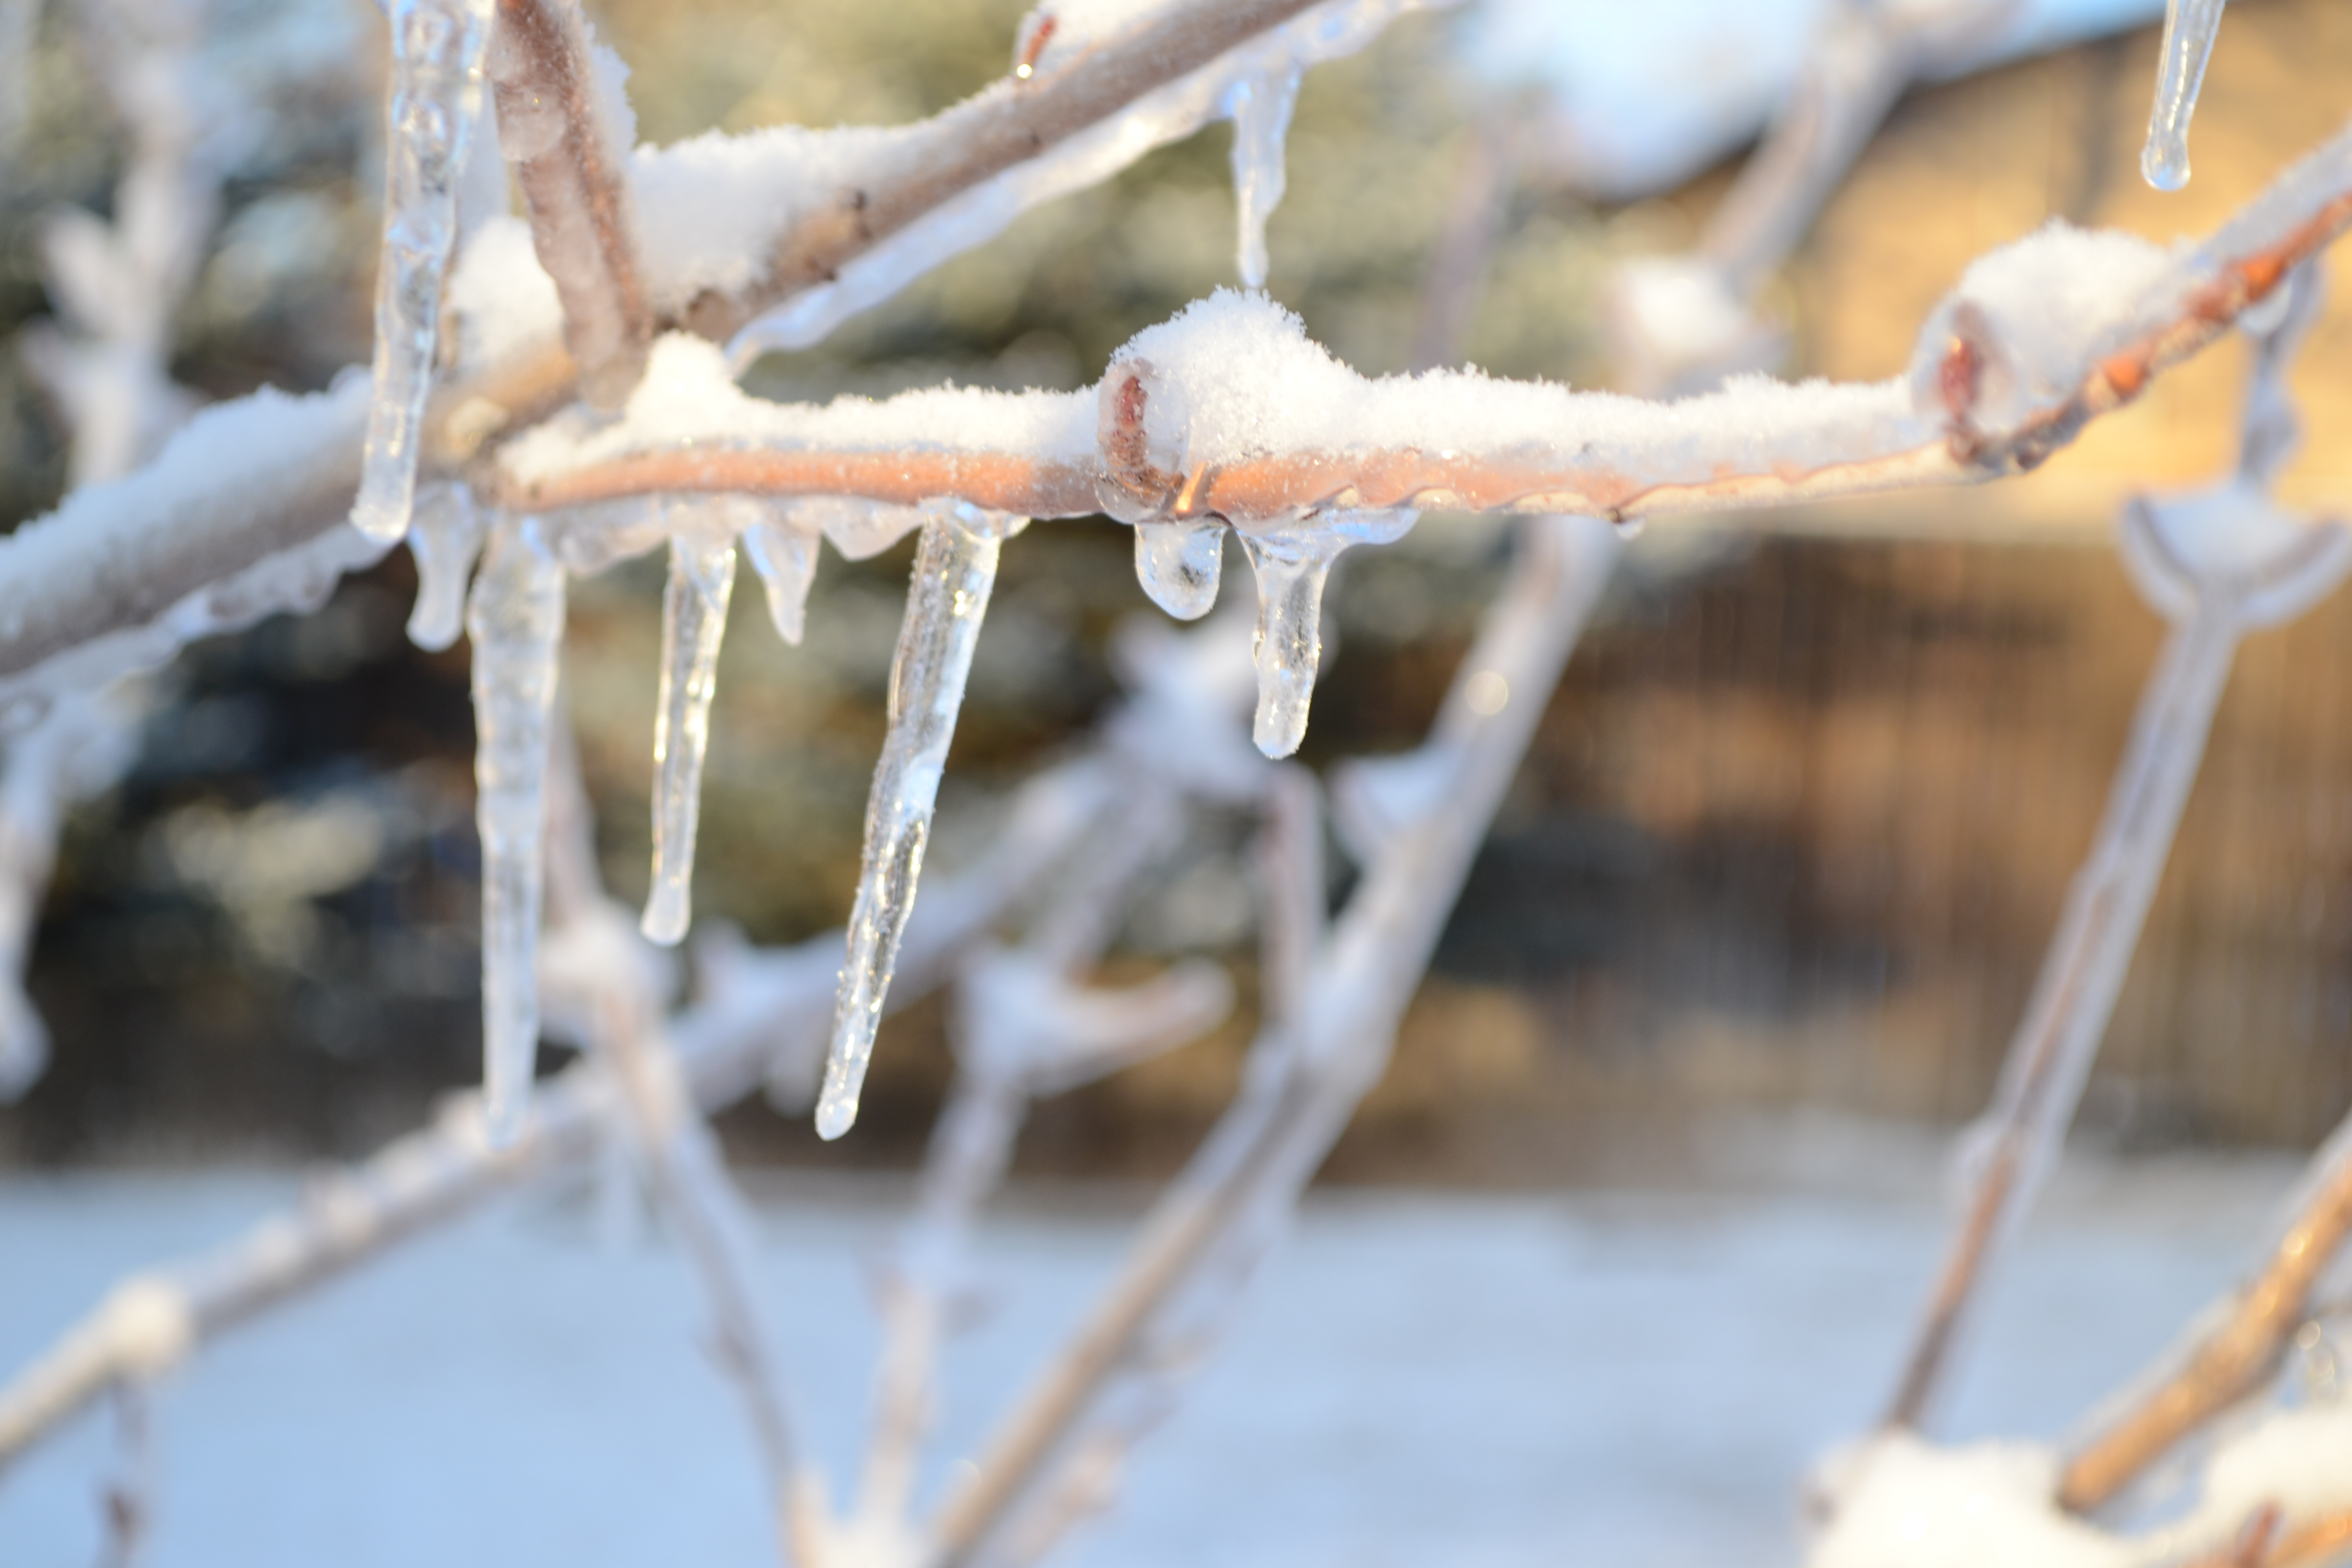 Making Icicles and Learning Science - Bring The Kids